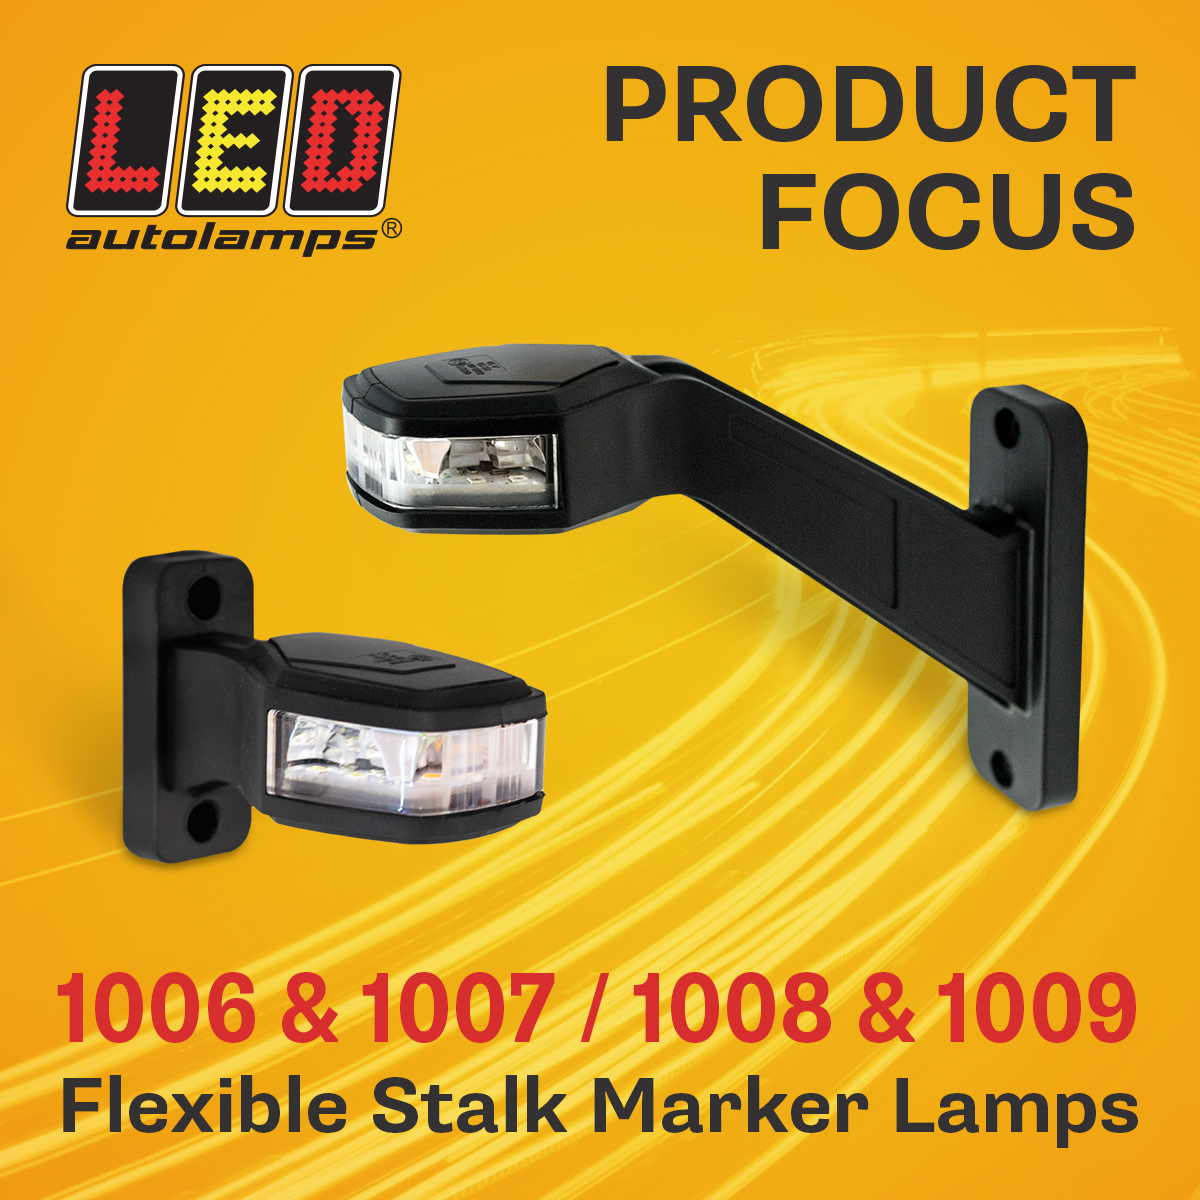 Product Focus - 1006 & 1007 / 1008 & 1009 Series Flexible Stalk Marker Lamps